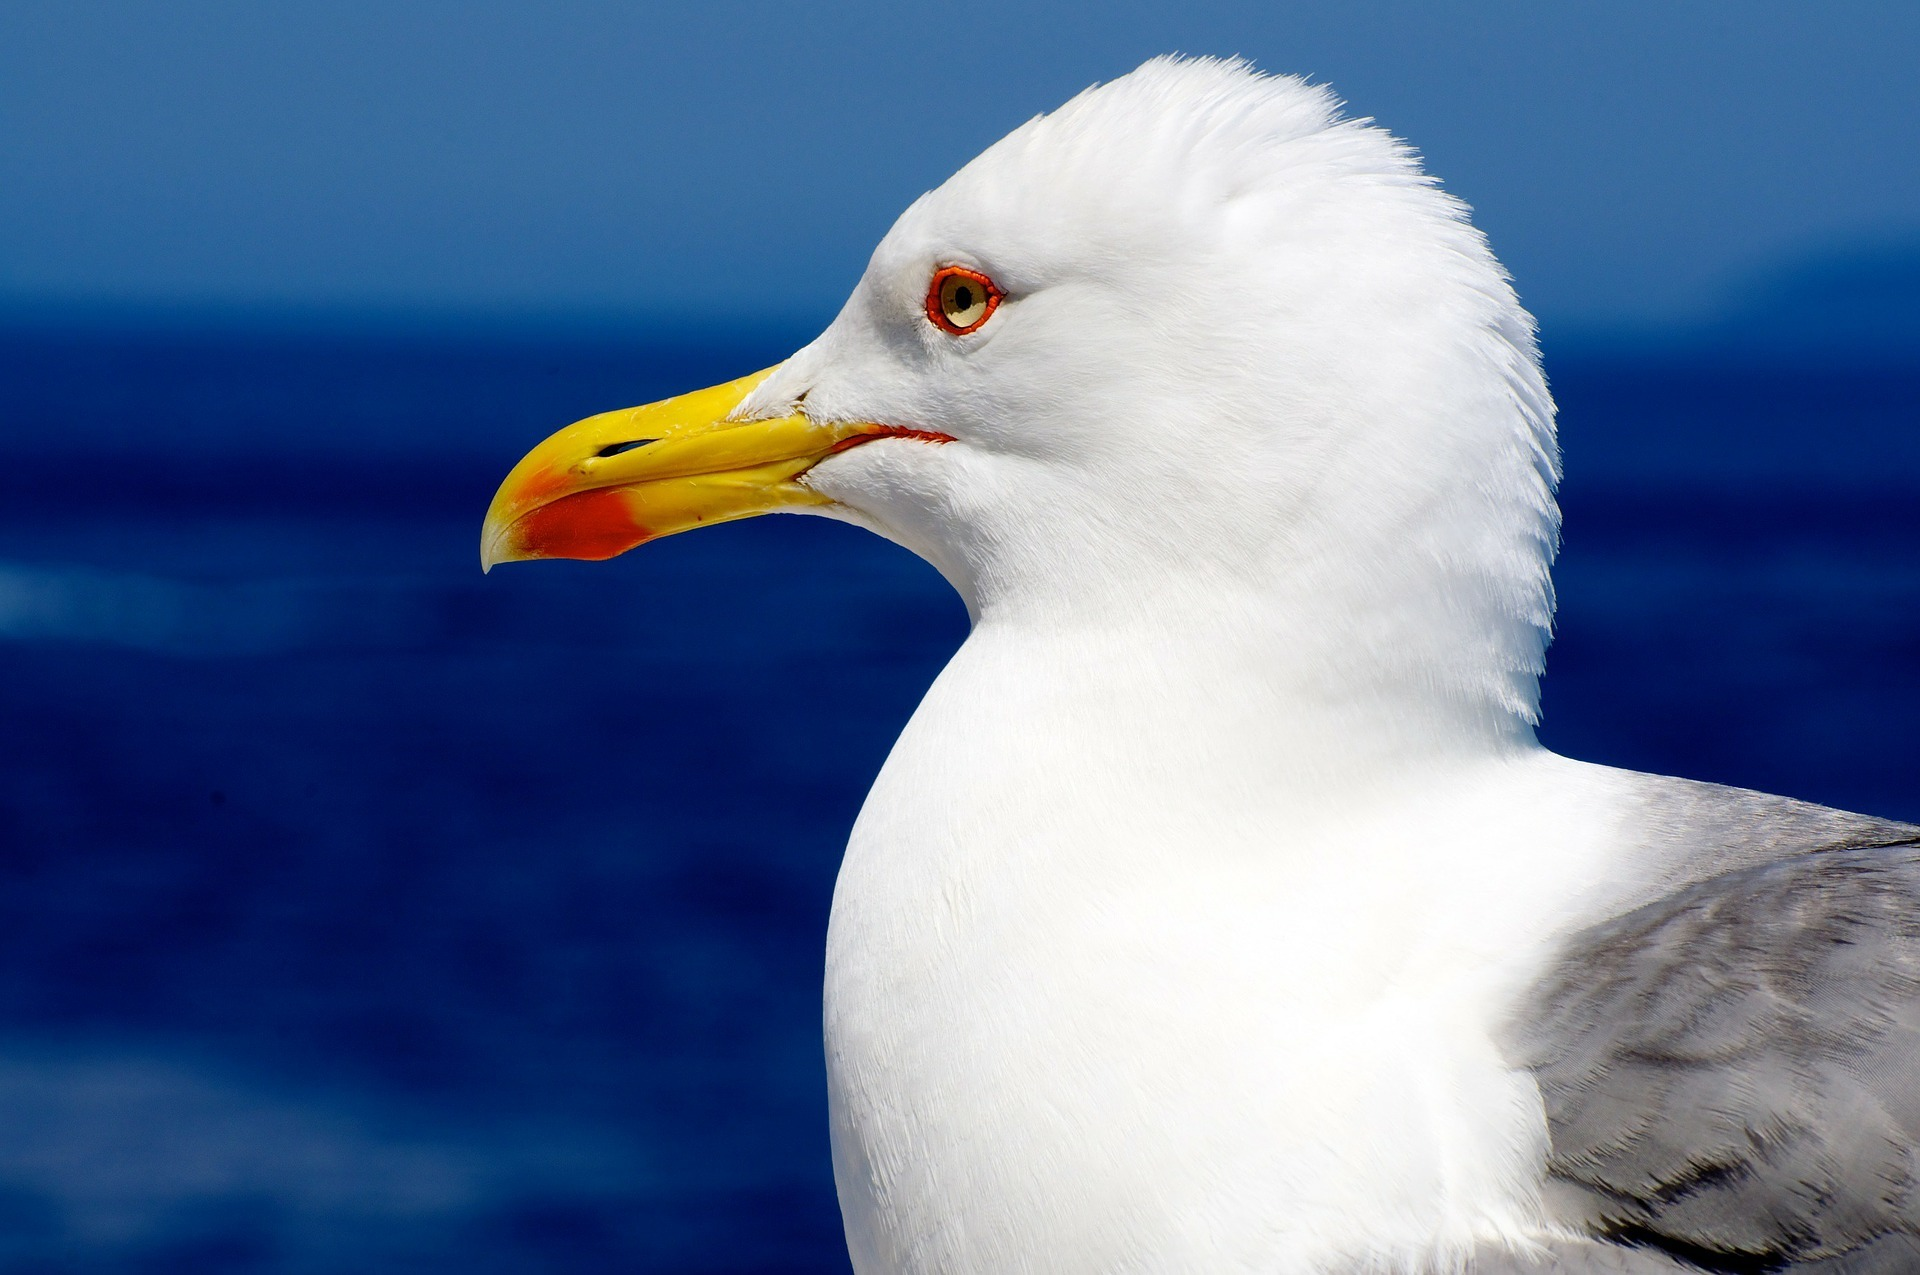 Seagulls may be fitted with